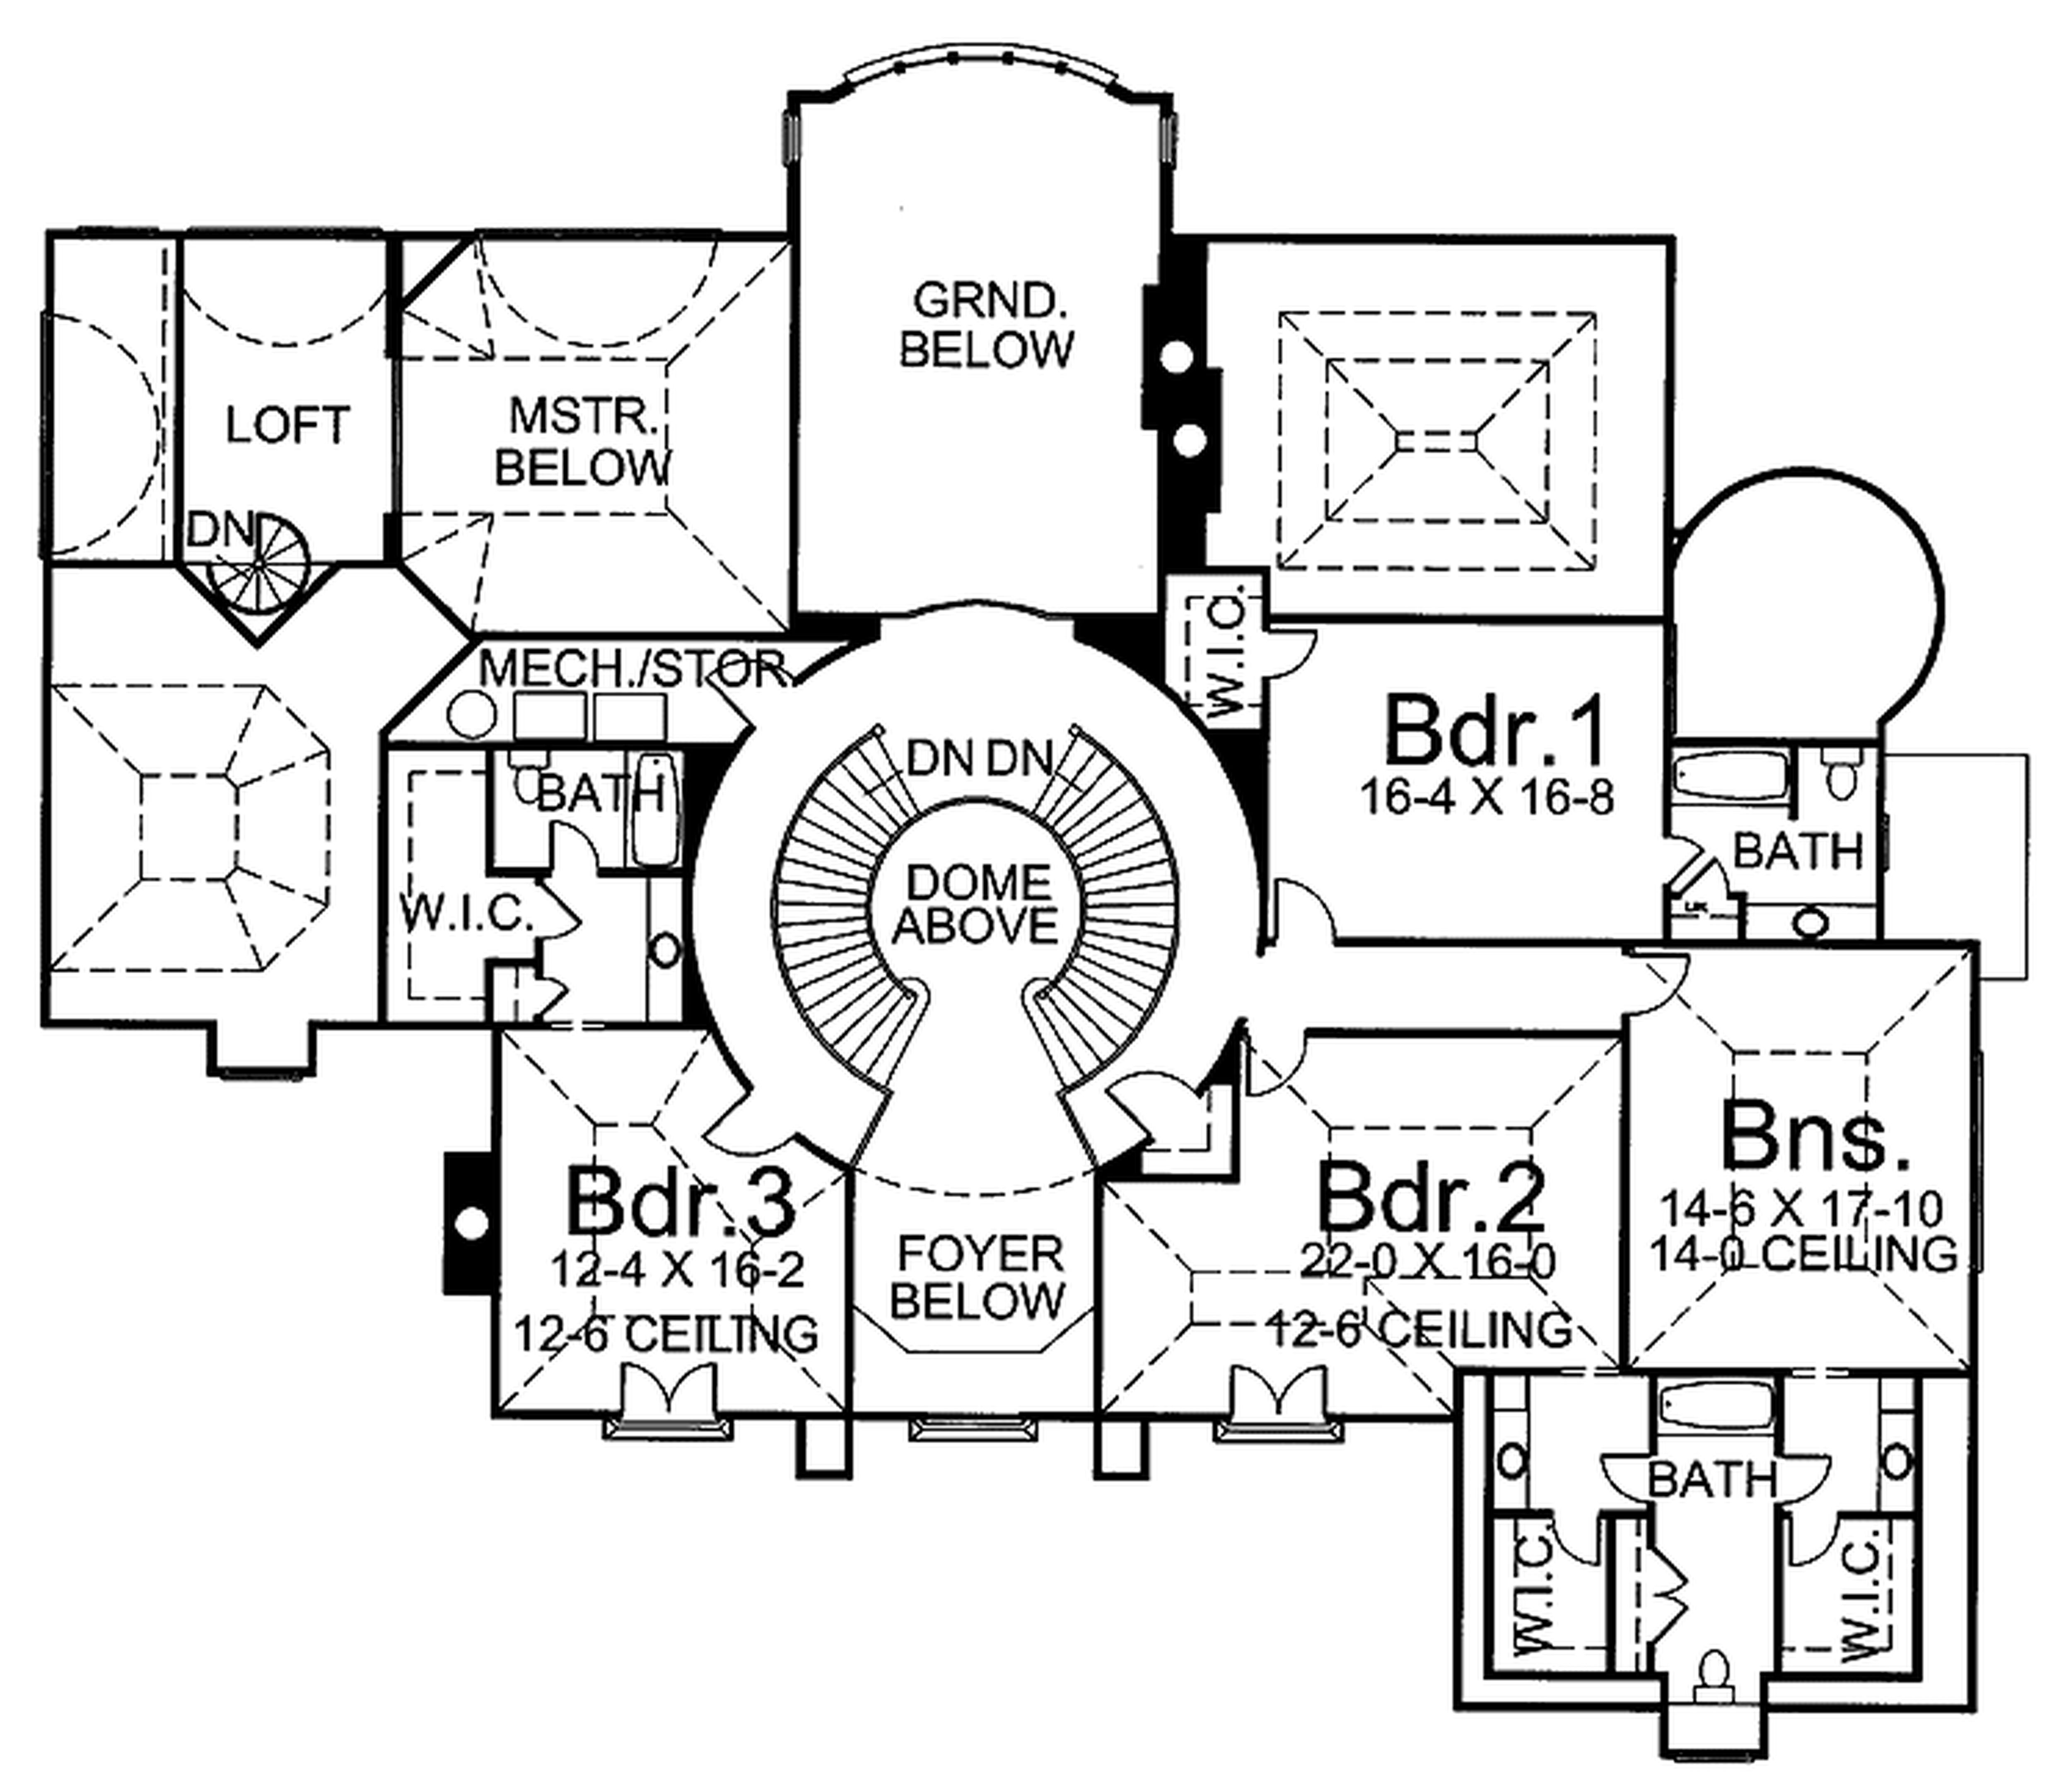 Hwepl14321 likewise 1000 Square Foot Home Plans likewise Large Kitchen Floor Plans as well Inspiring Dreamhome Plans Photo together with Glamorous Sq Ft Indian House Plans Gallery Best Inspiration. on tiny house ideas hgtv